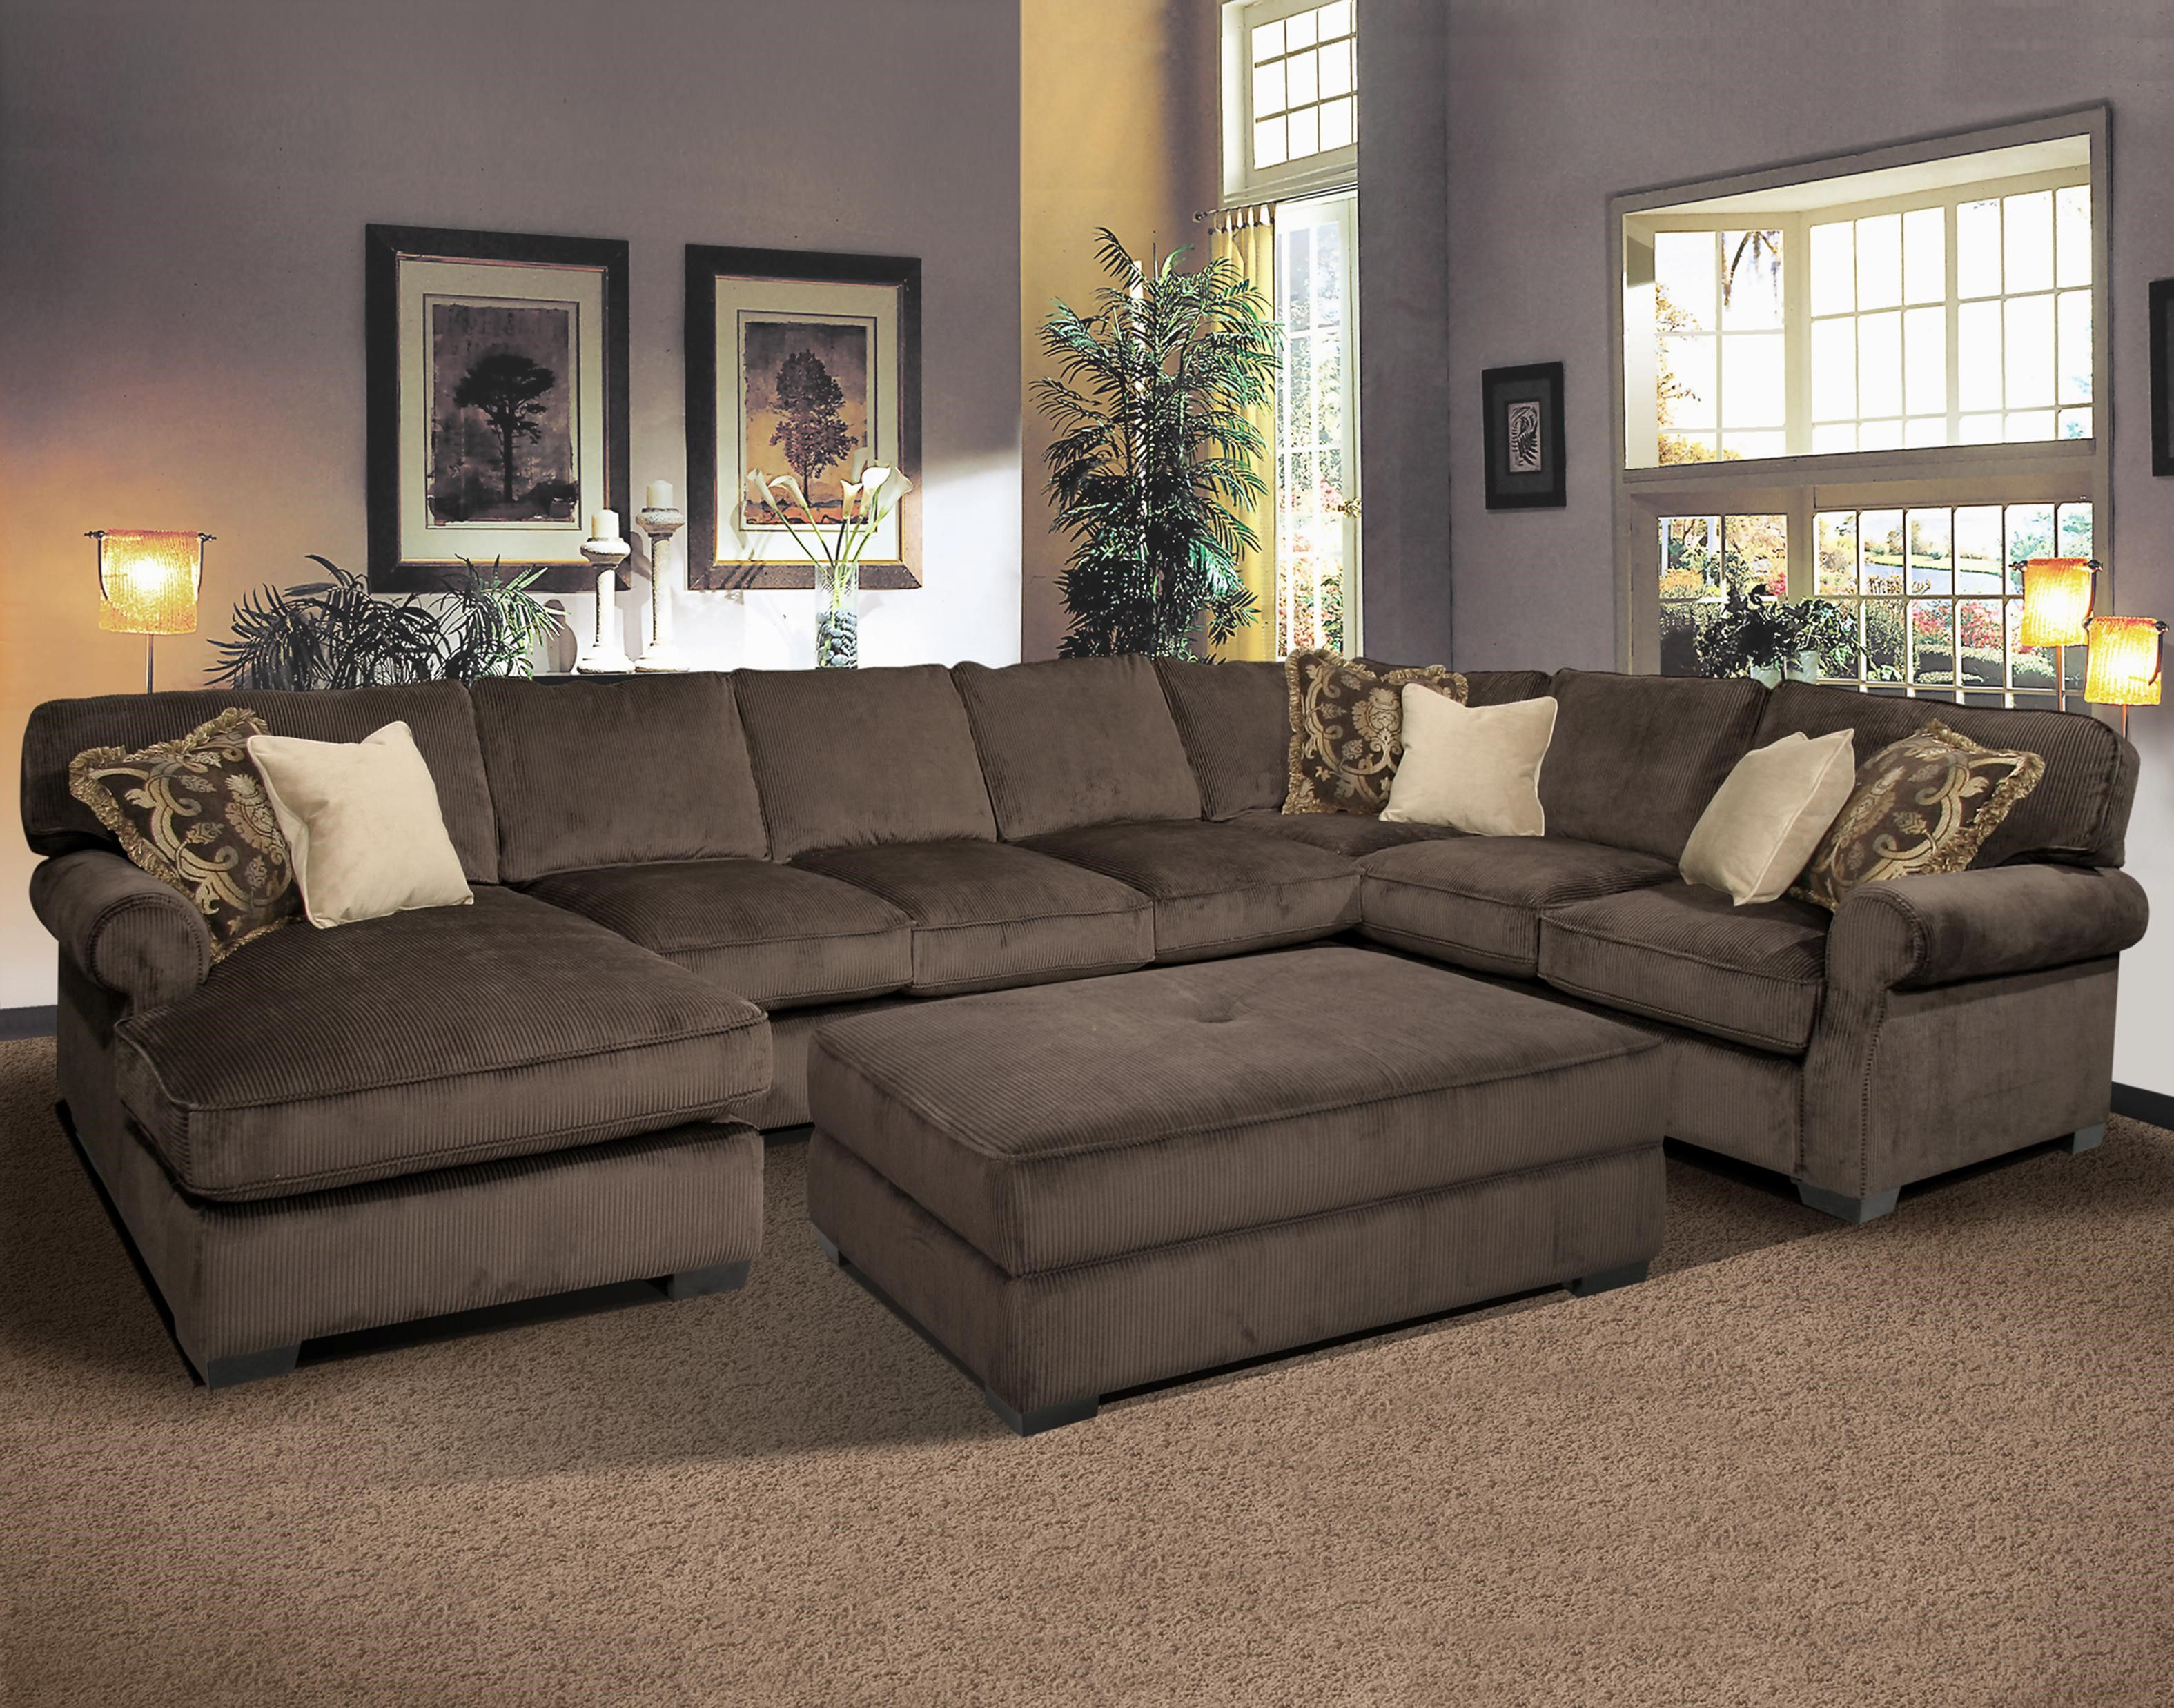 Comfortable living room sofas design with elegant - Small living room furniture for sale ...